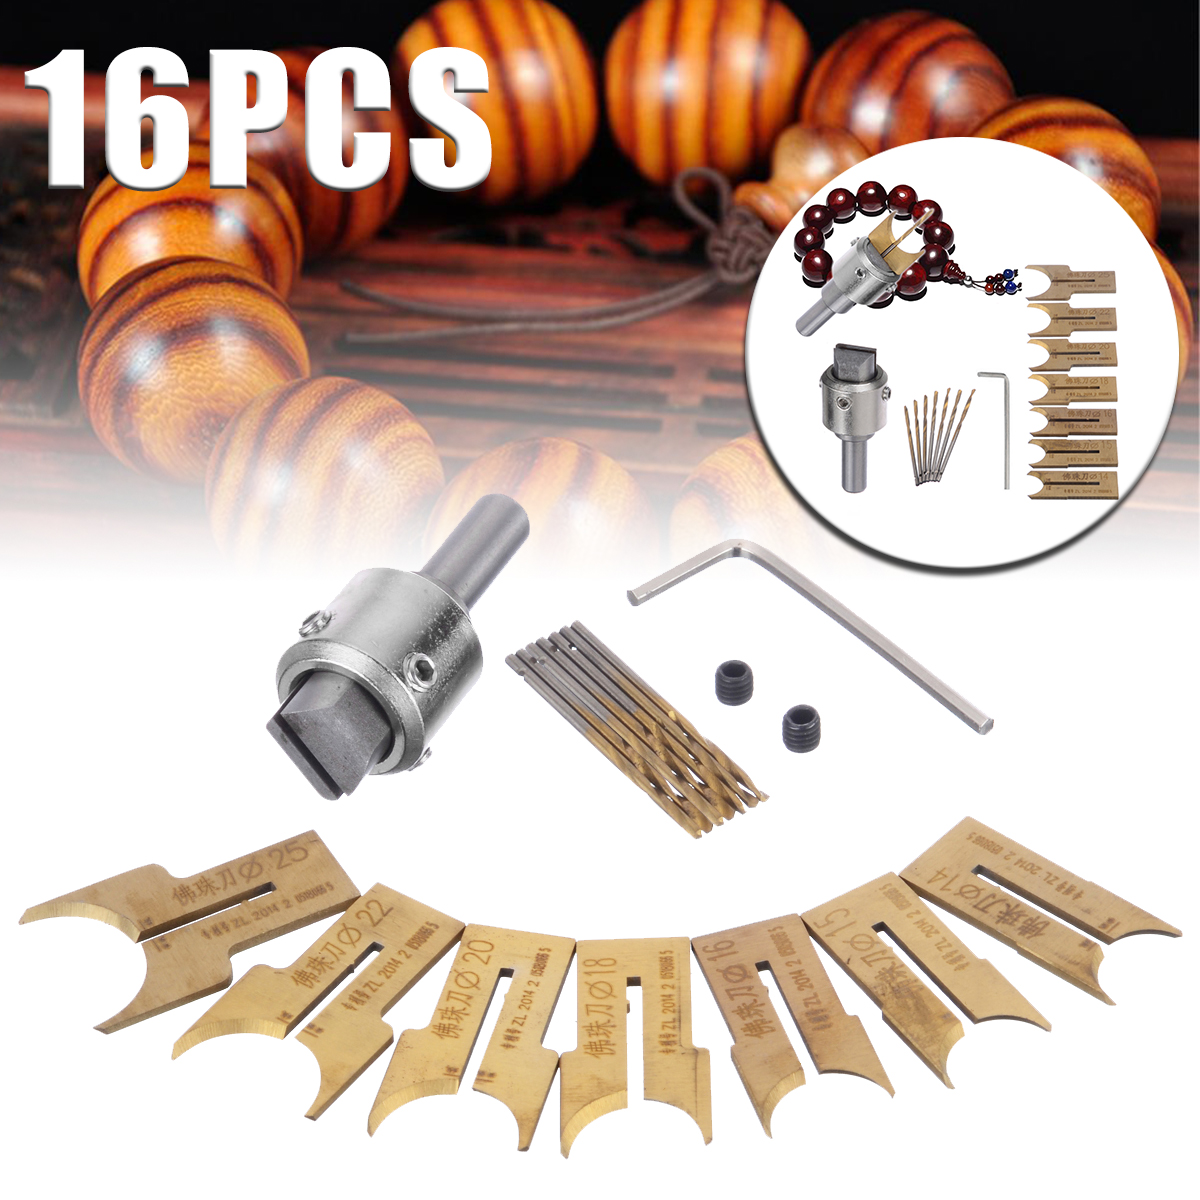 16pcs Quality Beads Drills Woodworking Router Bead Milling Cutter 14/15/16/18/20/22/25 Carbide Ball Blades DIY Beads Making